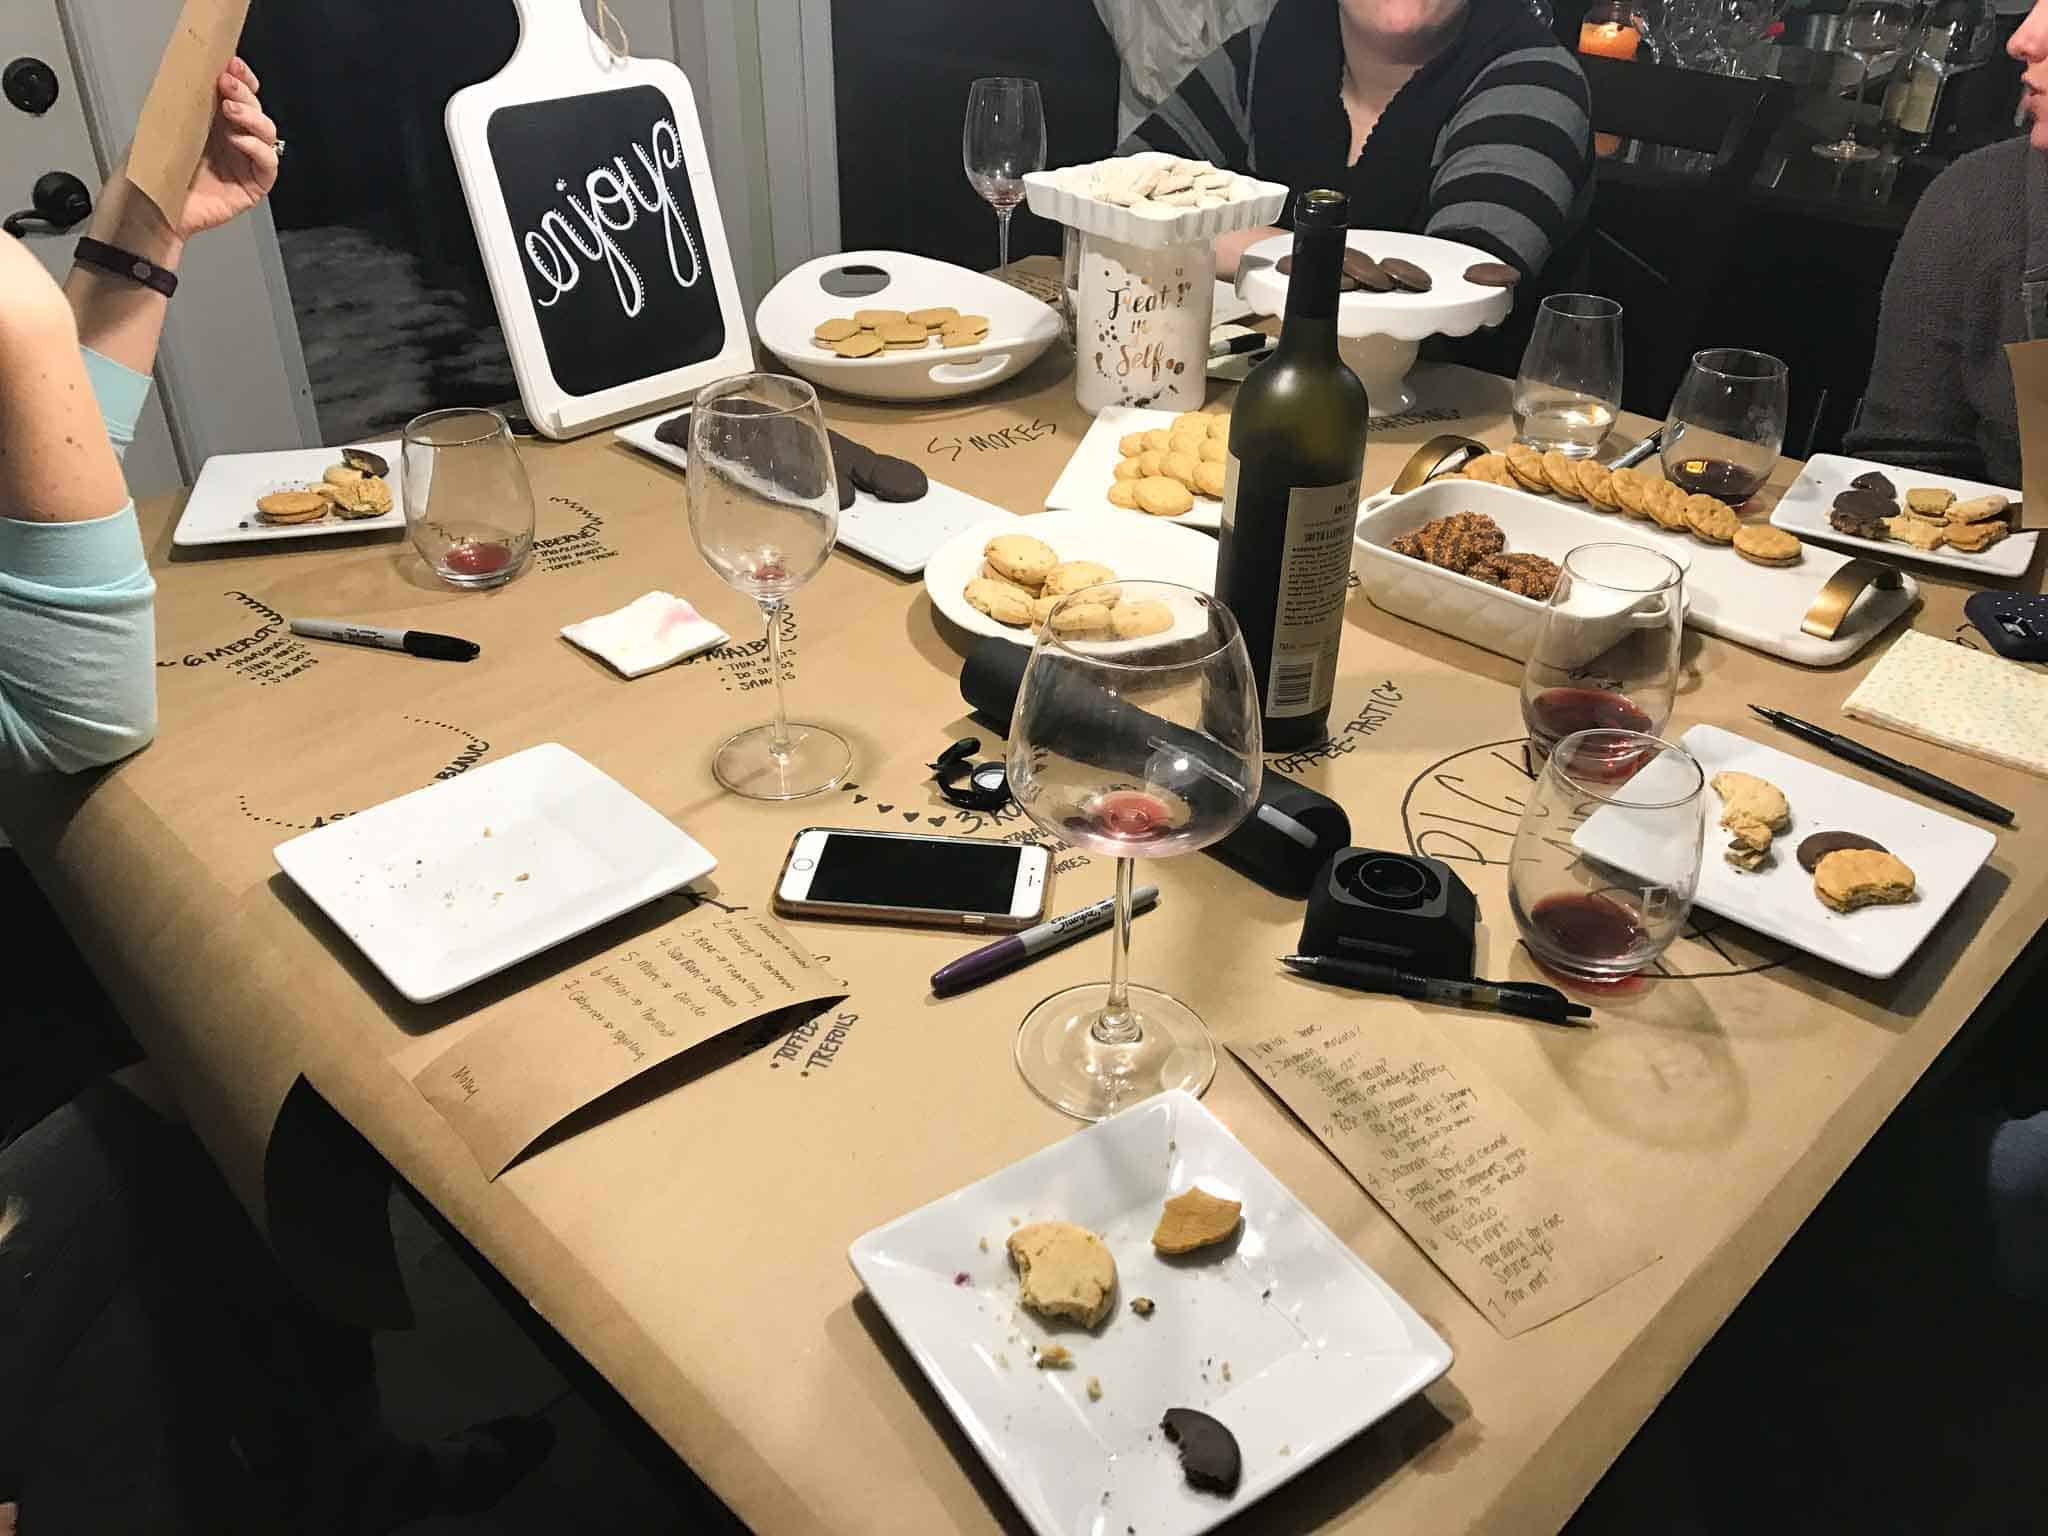 girl scout cookie and wine pairing night with girls sitting around table and voting